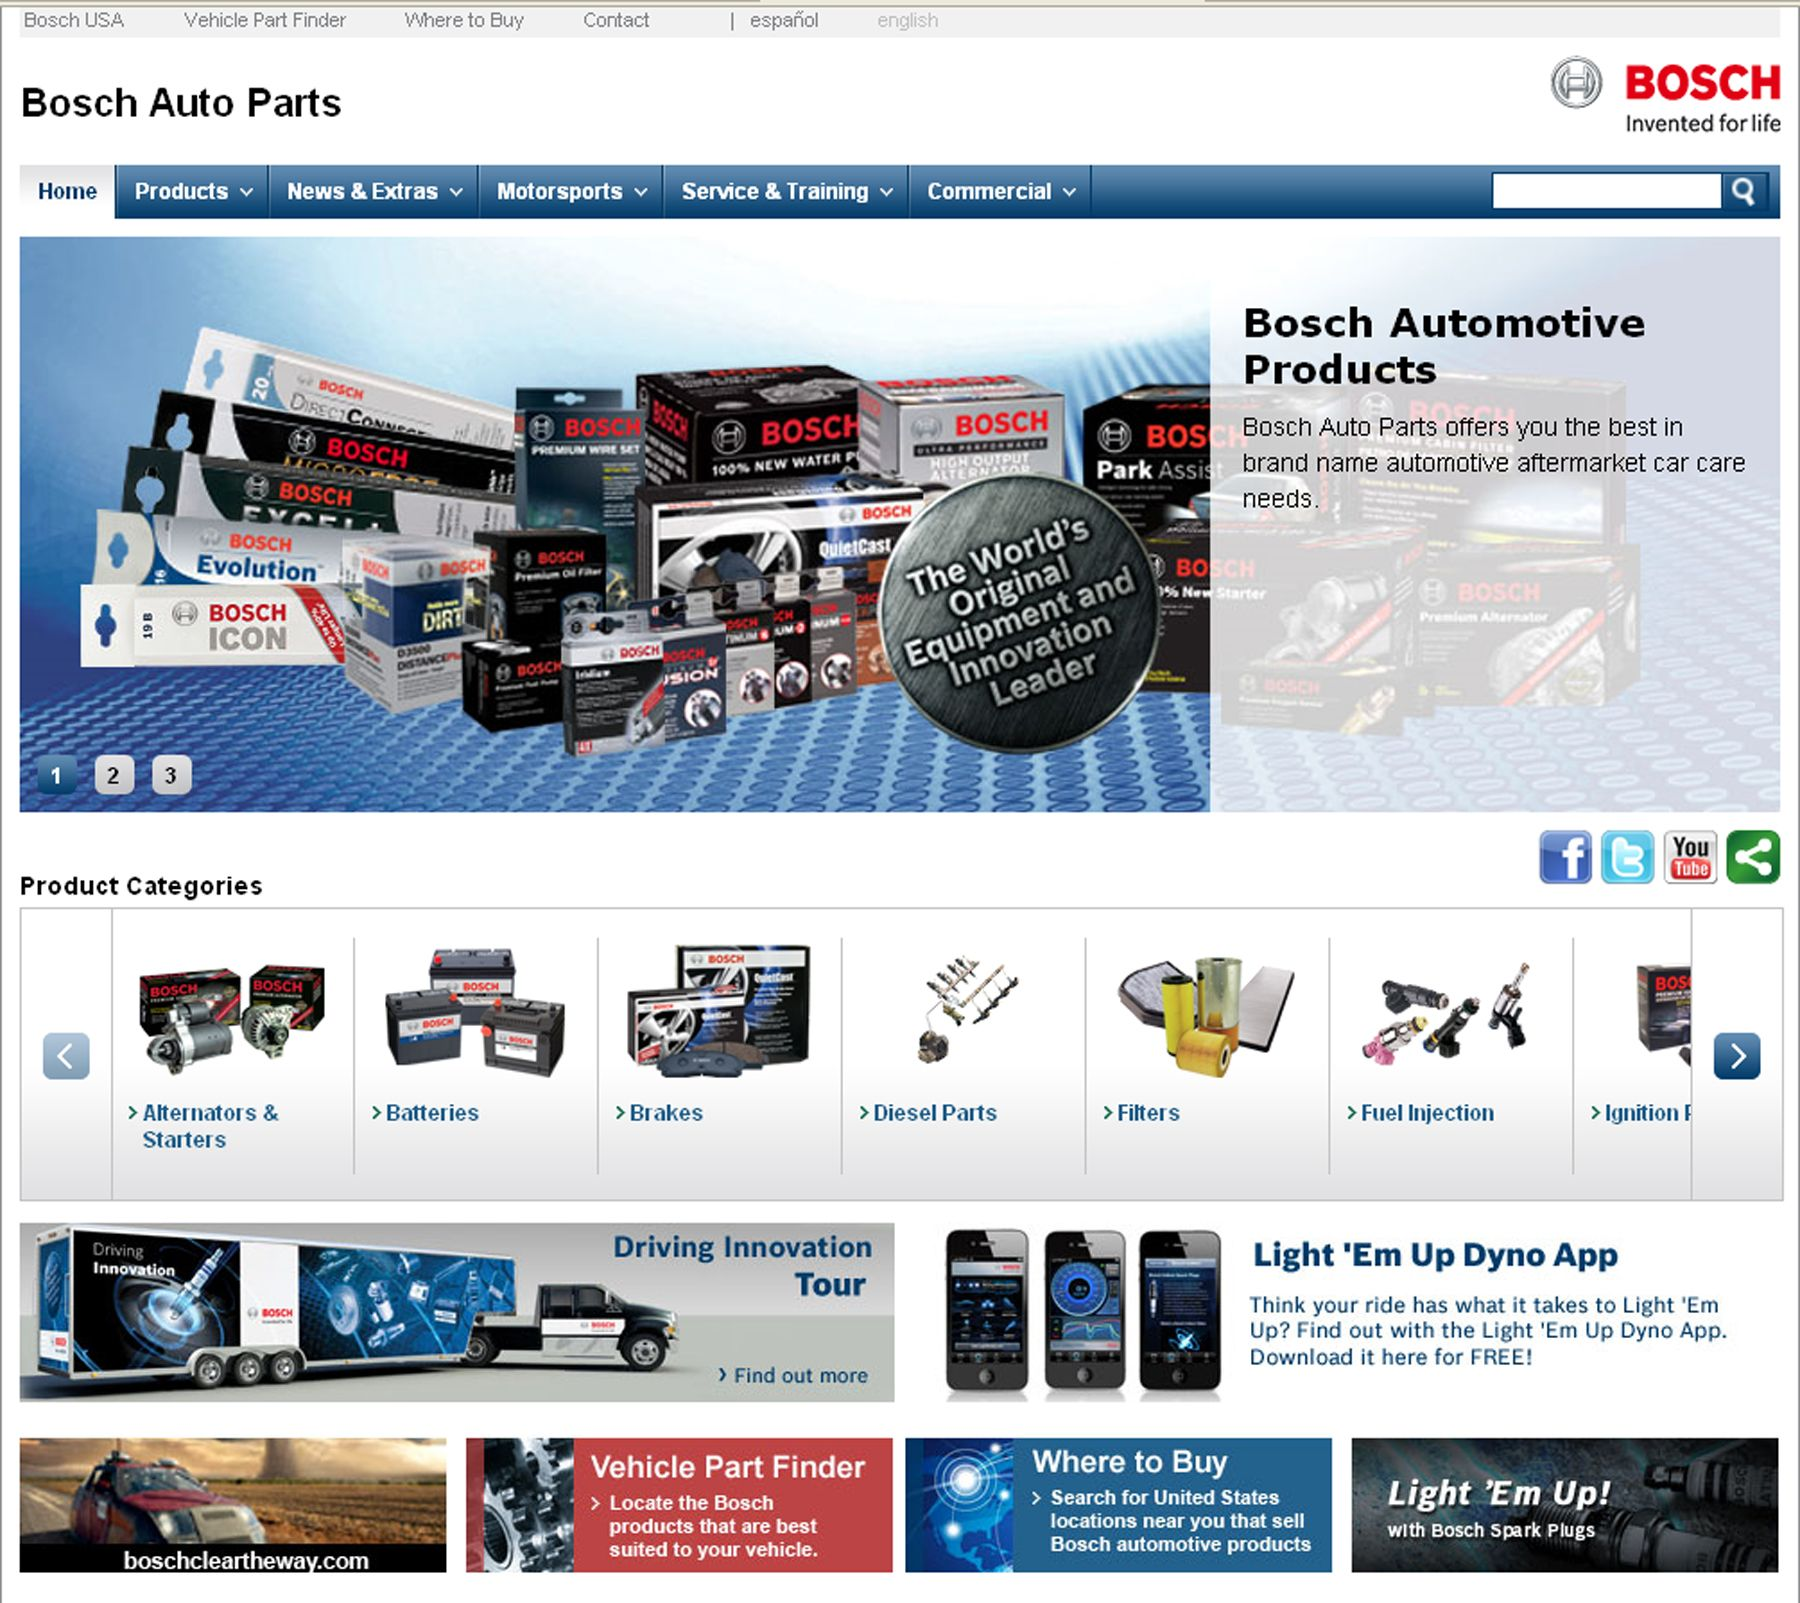 Bosch website is more visually stimulating